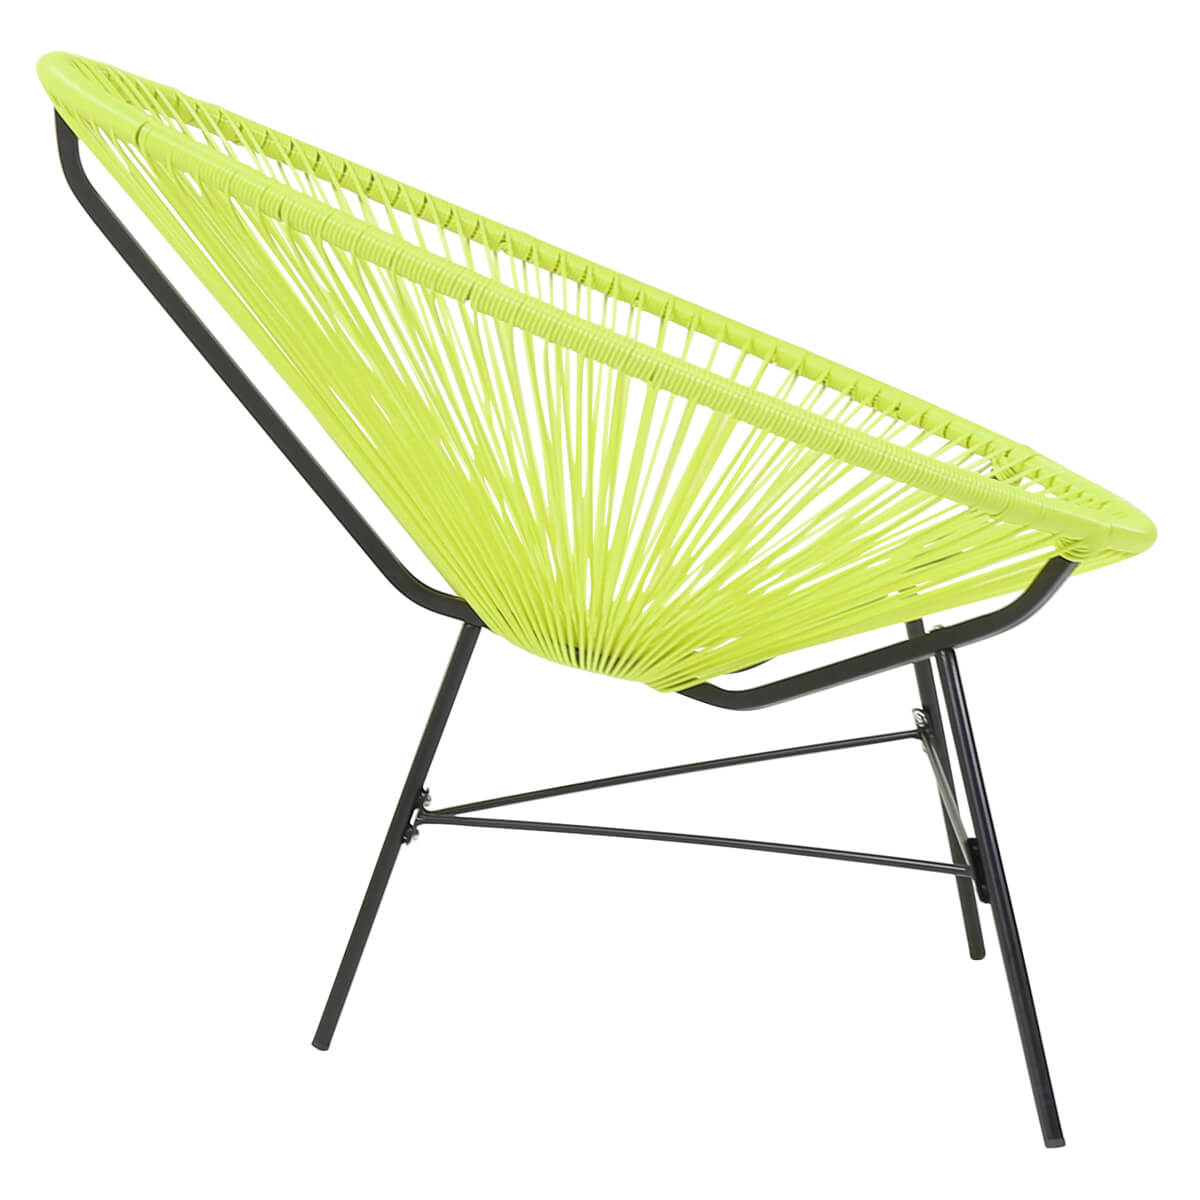 Buying guide for Garden Chairs